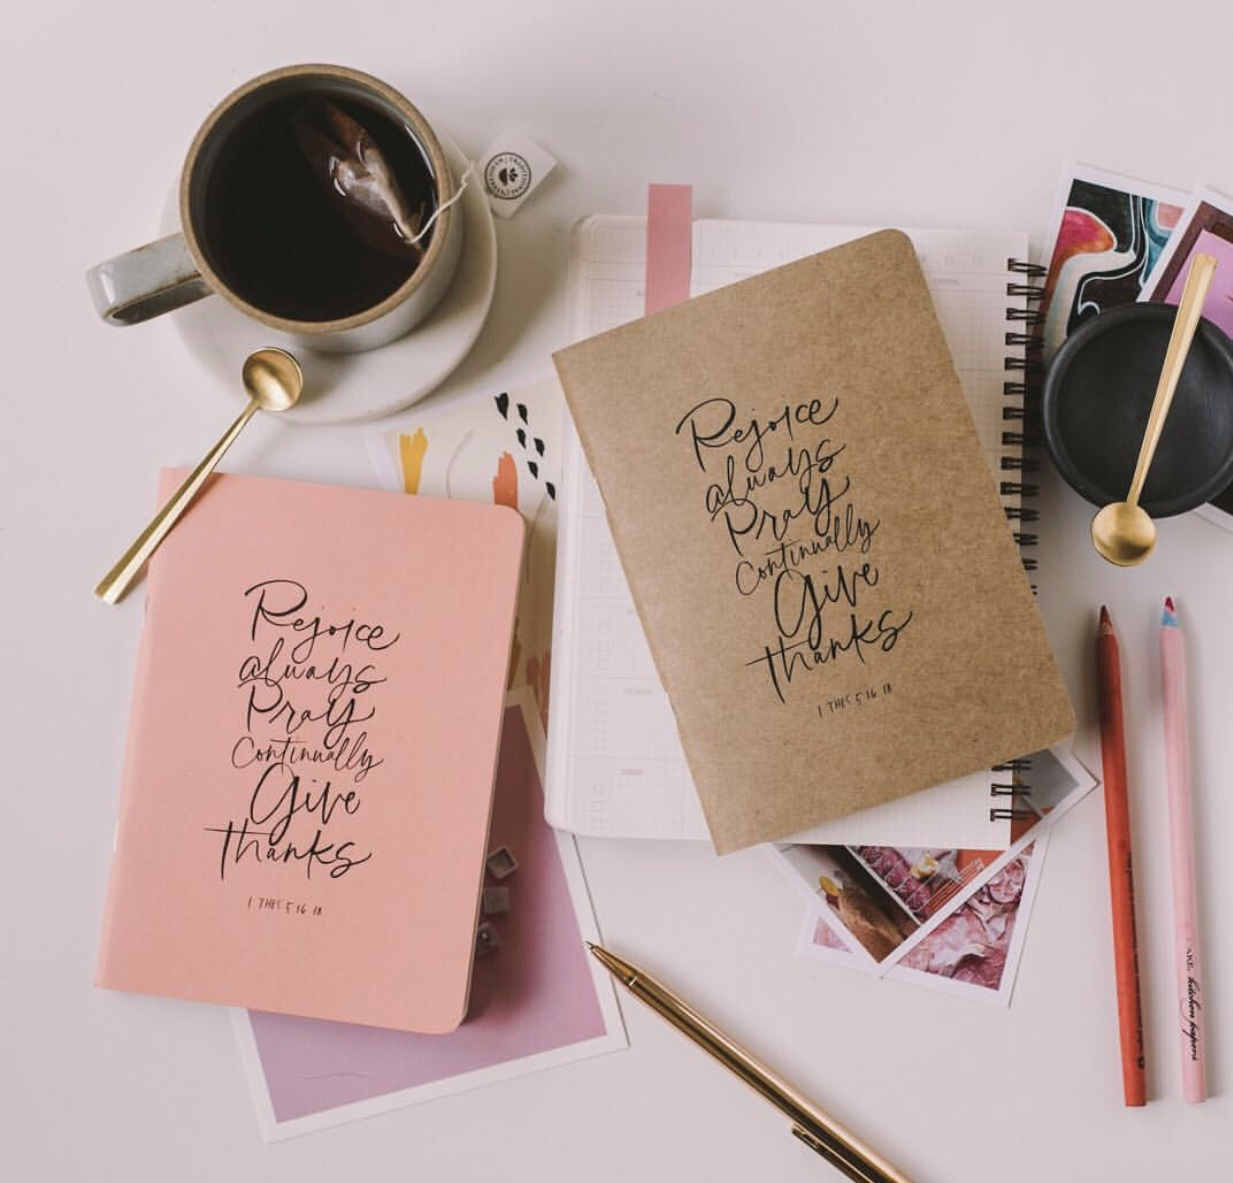 My favorite prayer journal I mentioned on this episode is from Val Marie Paper. Click for  my affiliate link  to get some great buys! Everything is 30% off in this July sale! I got a couple of Fresh Start journals for Christmas gifts for only $10!